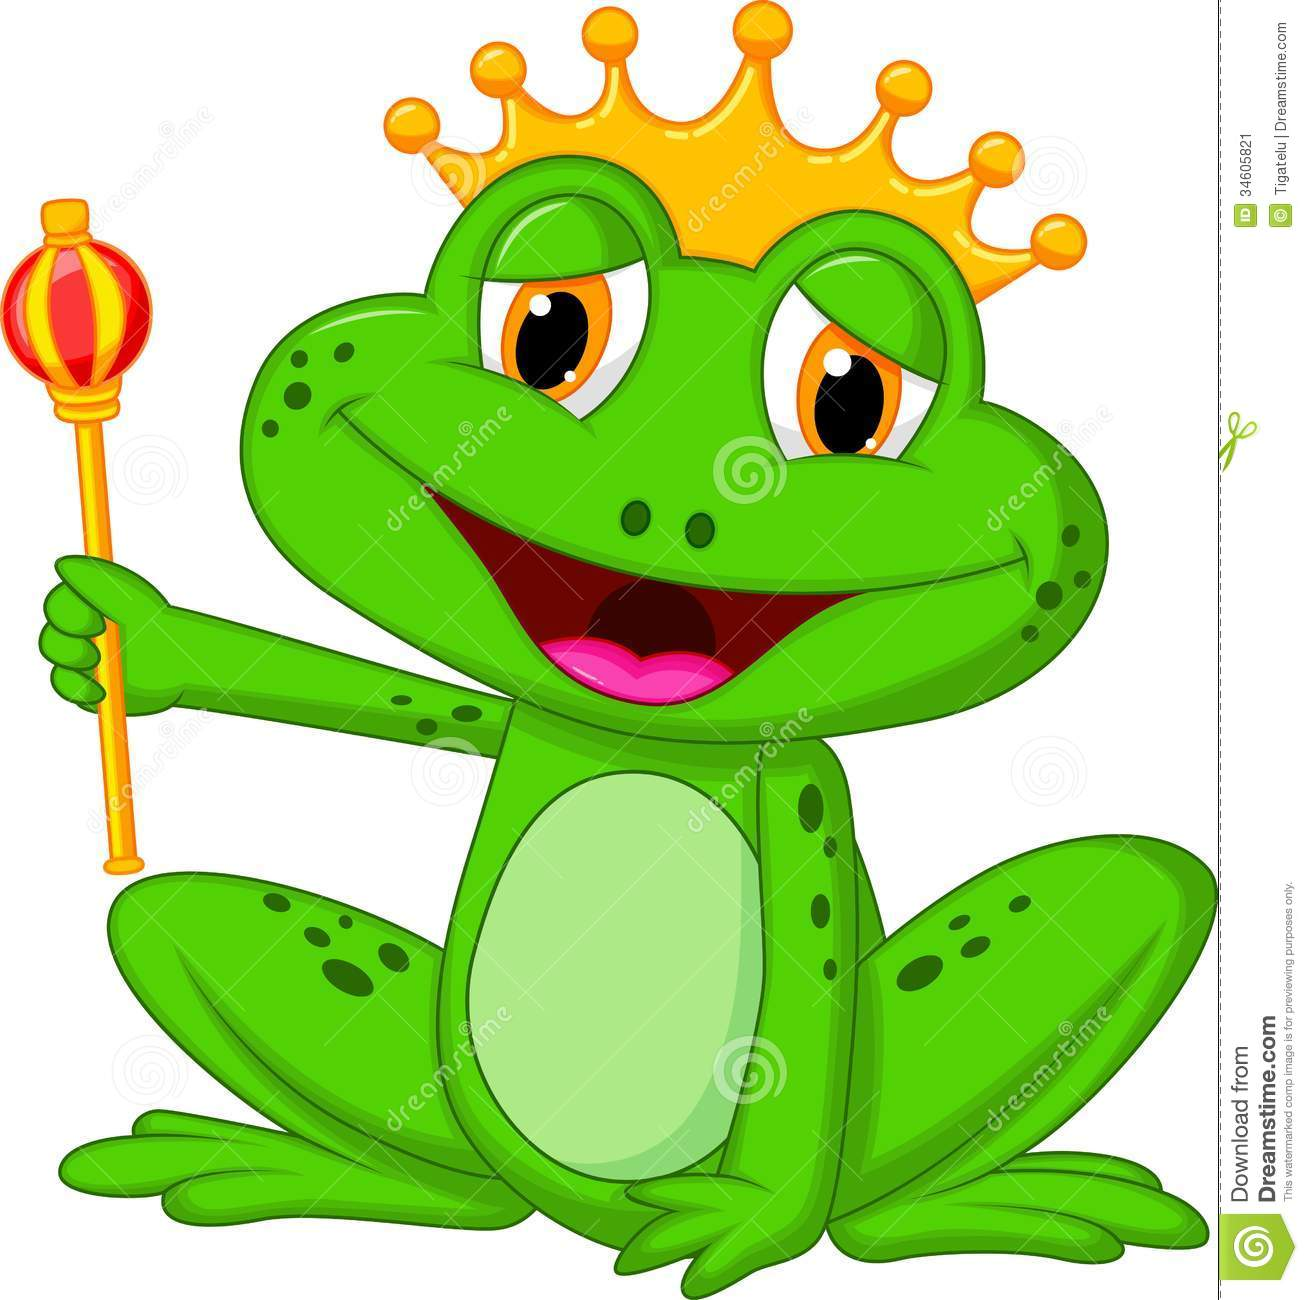 Frog King Cartoon Stock Image - Image: 34605821